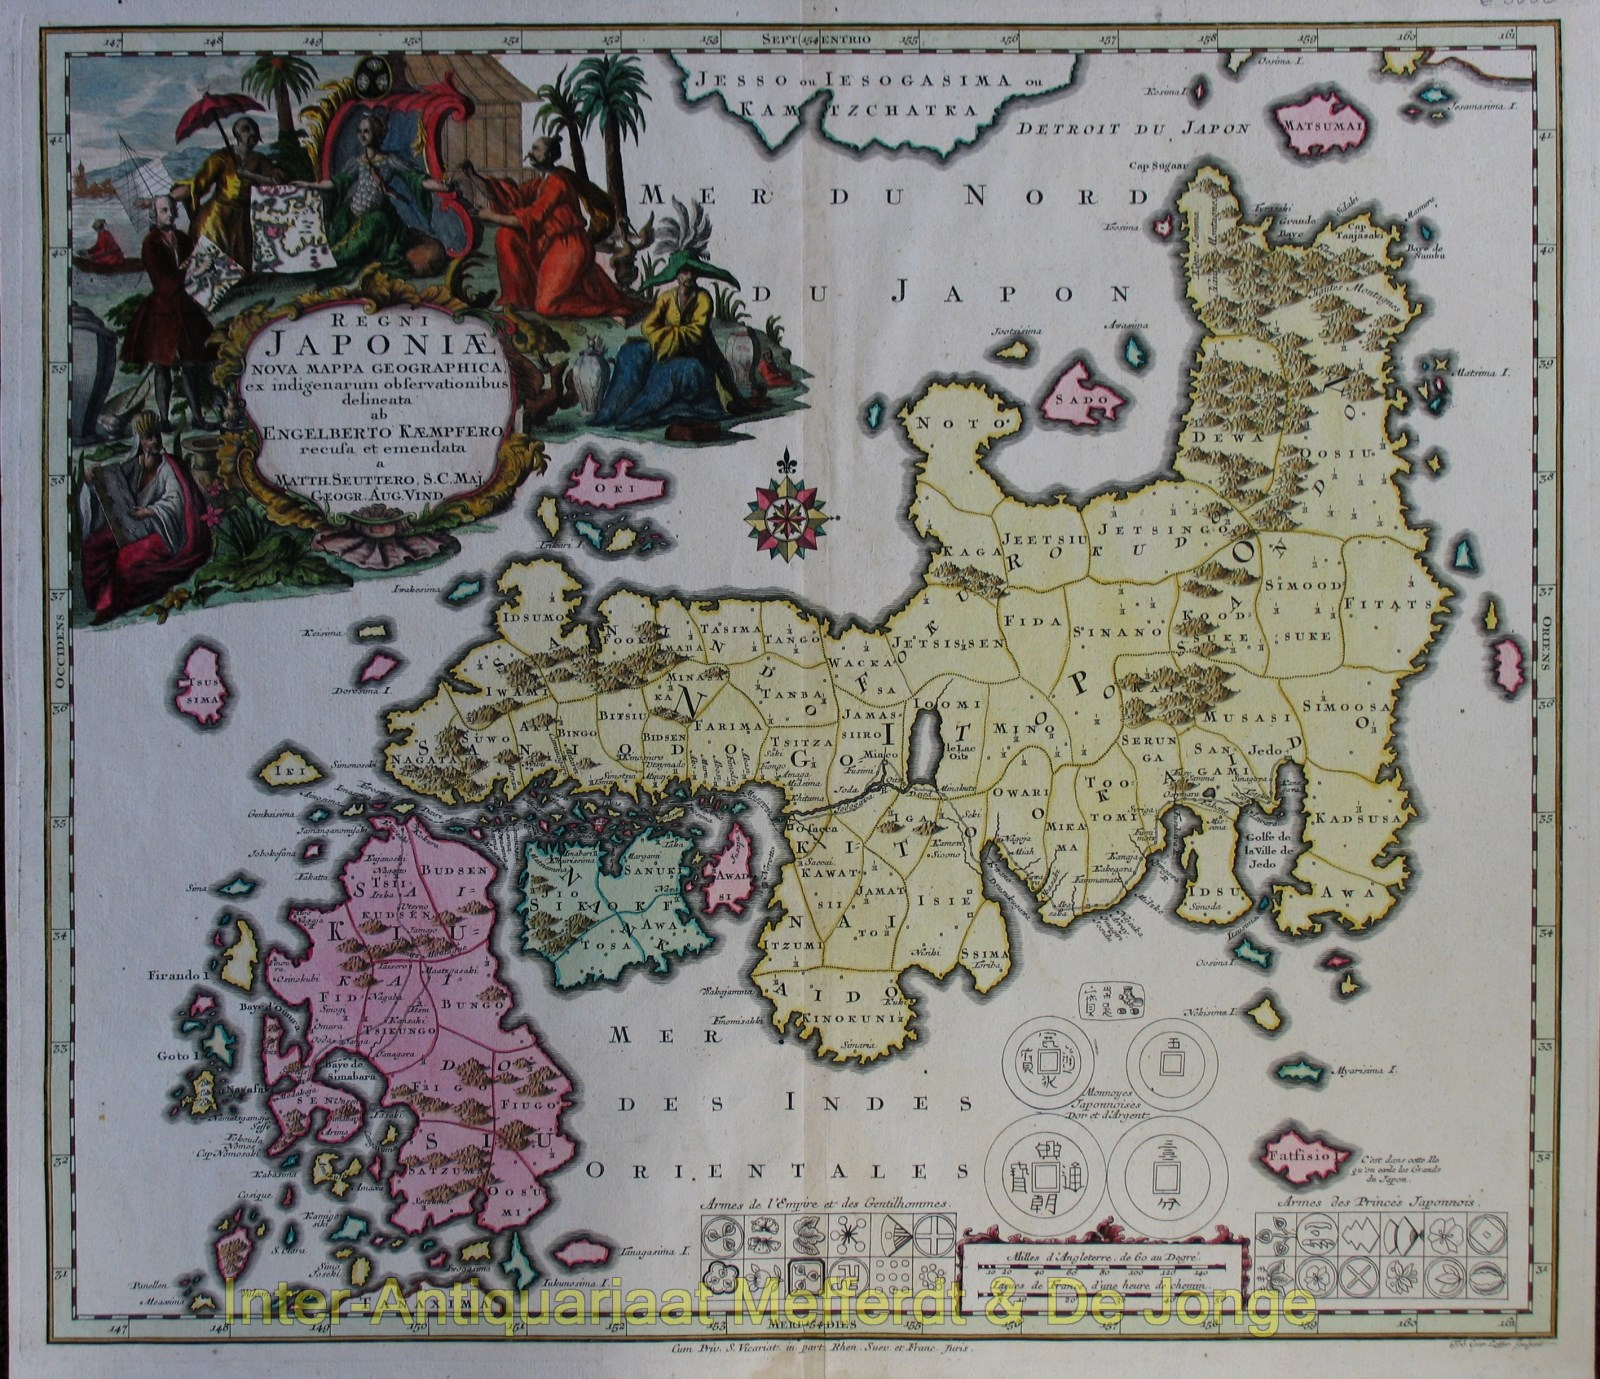 Japan map seutter inter antiquariaat mefferdt de jonge japan map seutter gumiabroncs